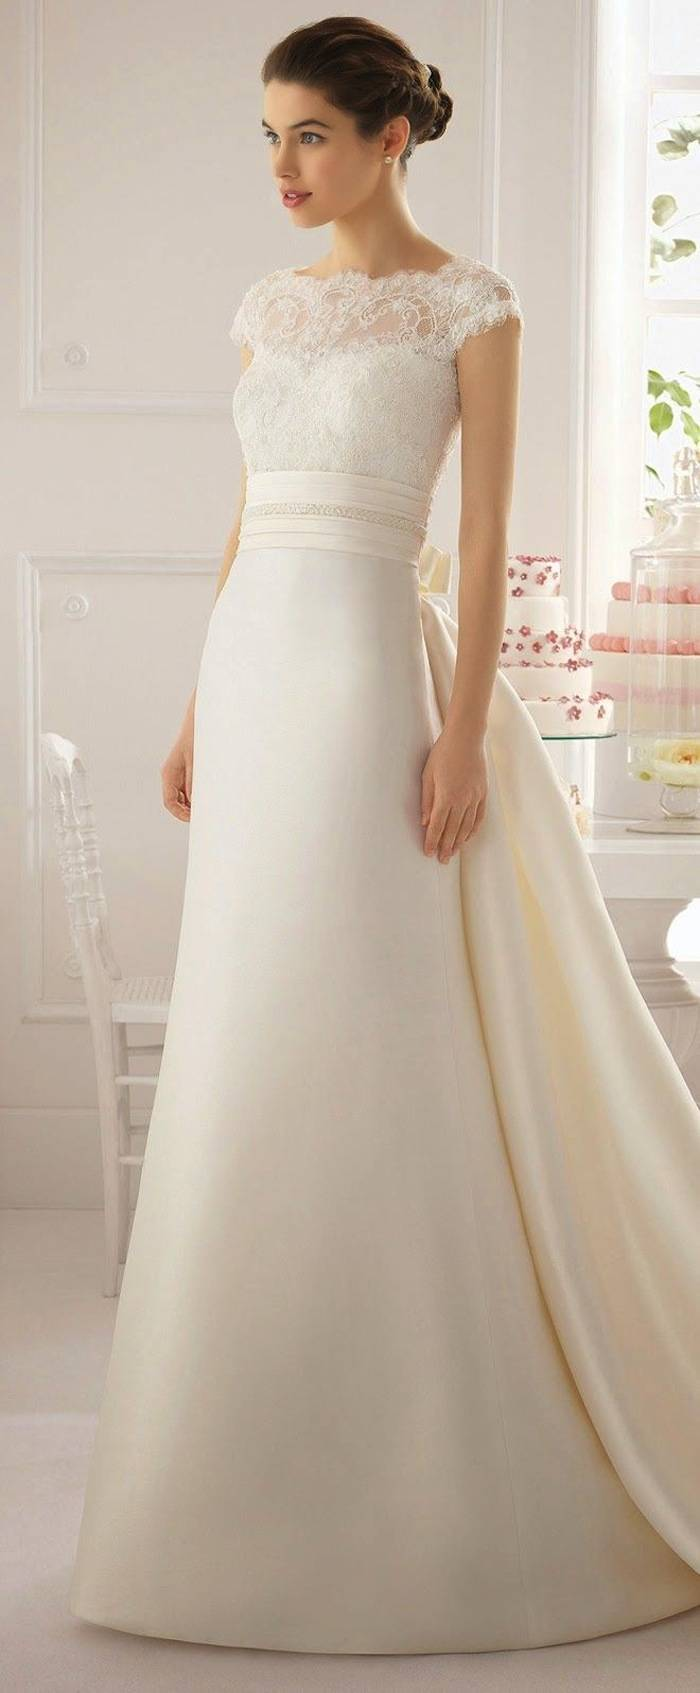 modest-wedding-dresses-37-08292015-ky